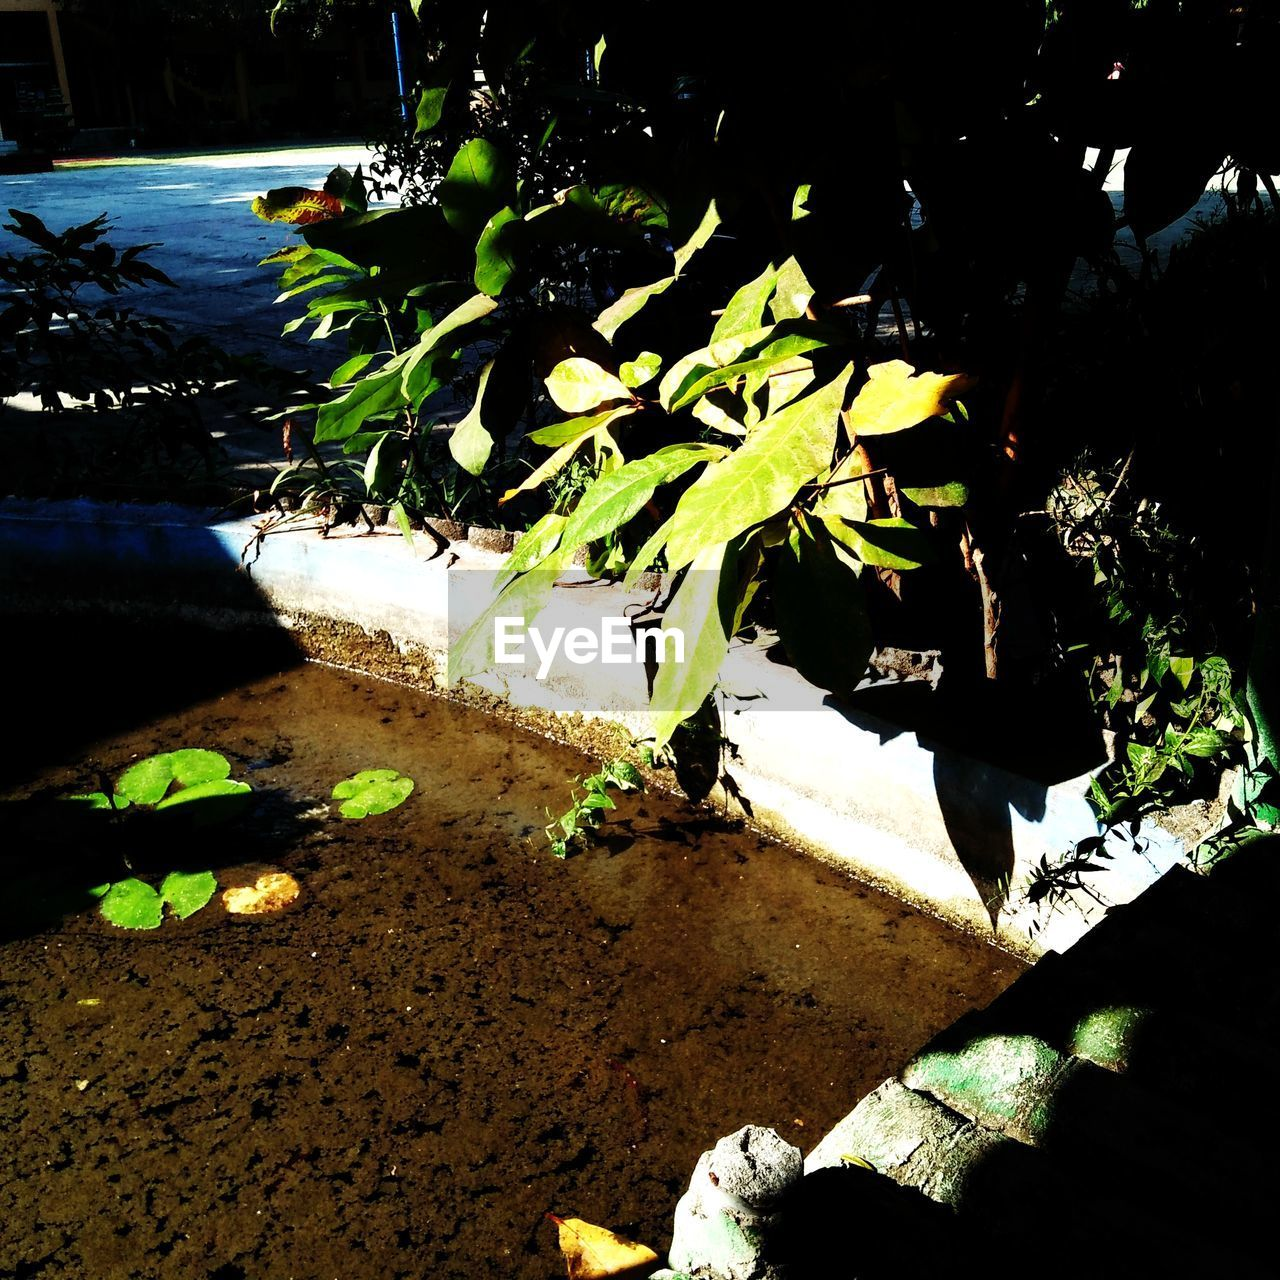 nature, sunlight, plant, shadow, water, no people, leaf, plant part, outdoors, growth, high angle view, beauty in nature, lake, land, tranquility, dirt, field